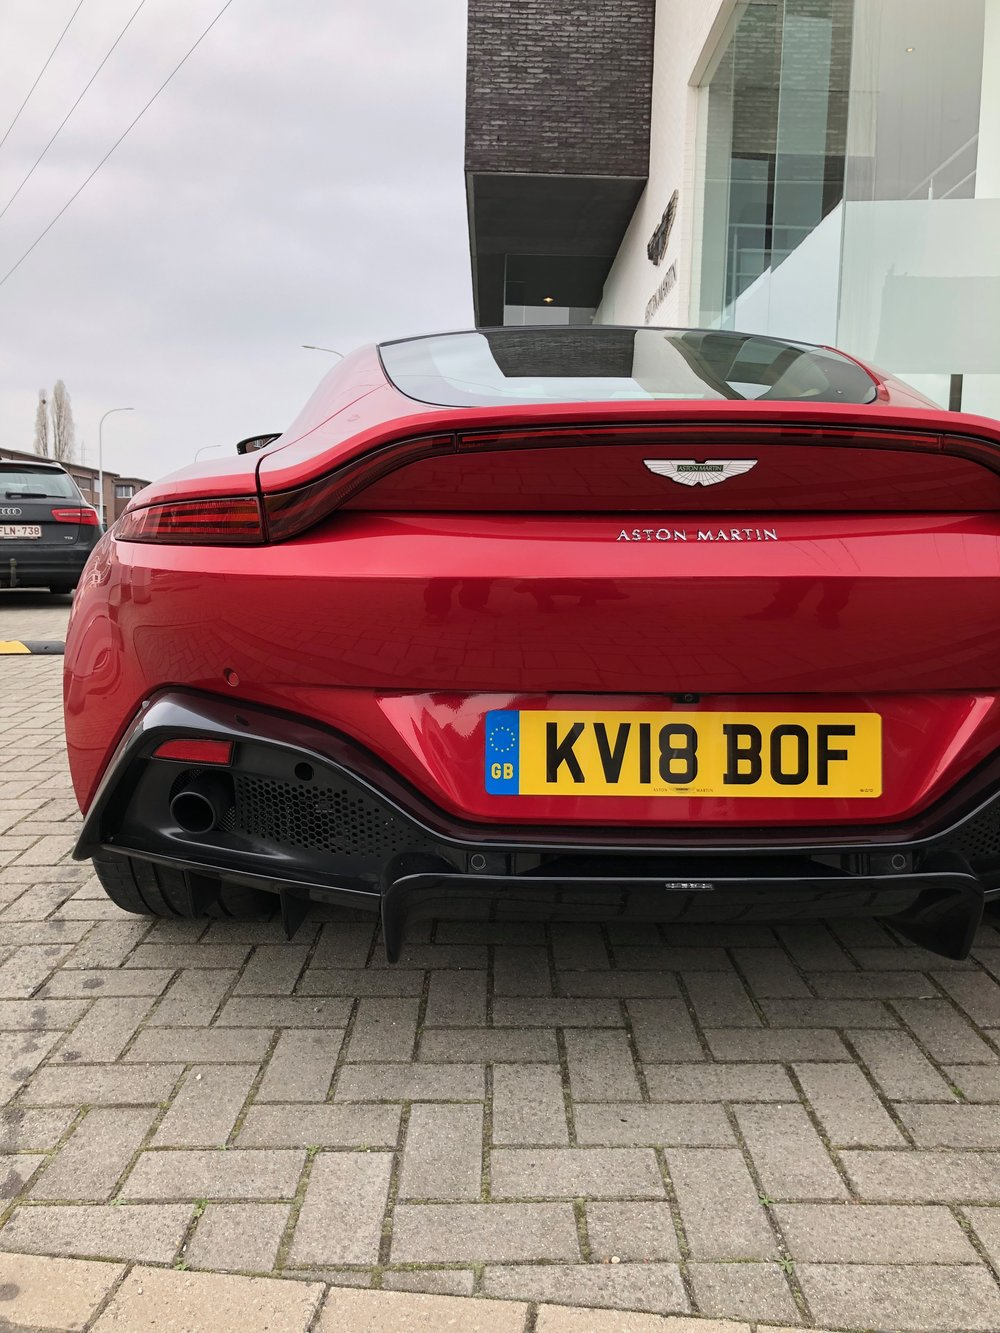 The Vantage has some of the most gorgeous tail light design I've seen in cars to date